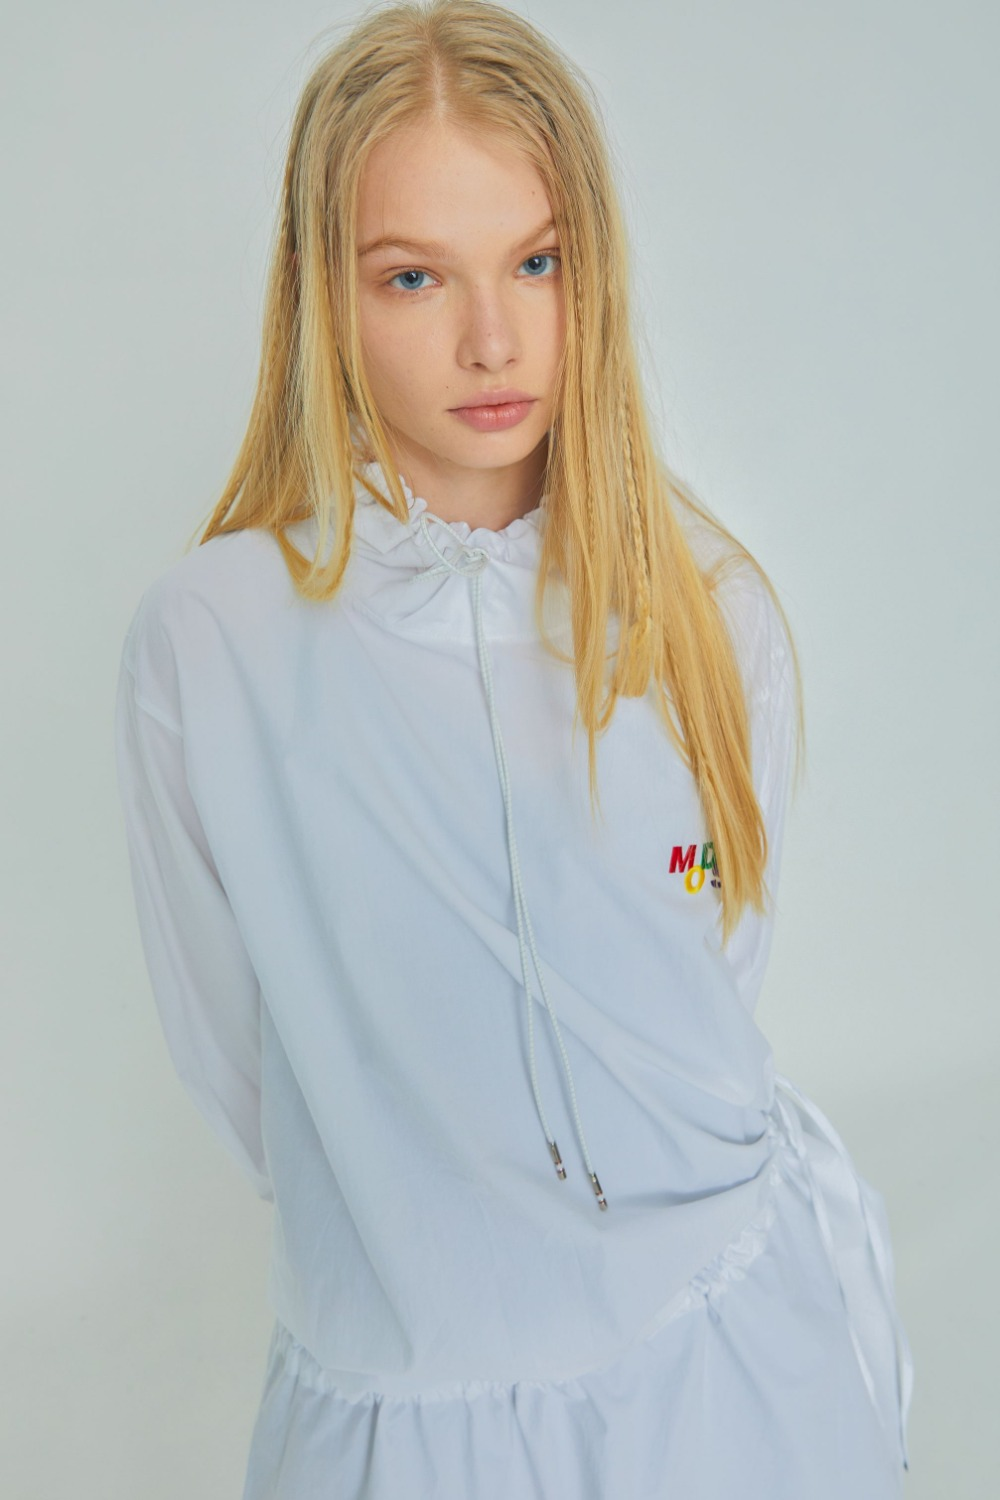 MODS LOGO HOODIE ONE PIECE (WHITE)